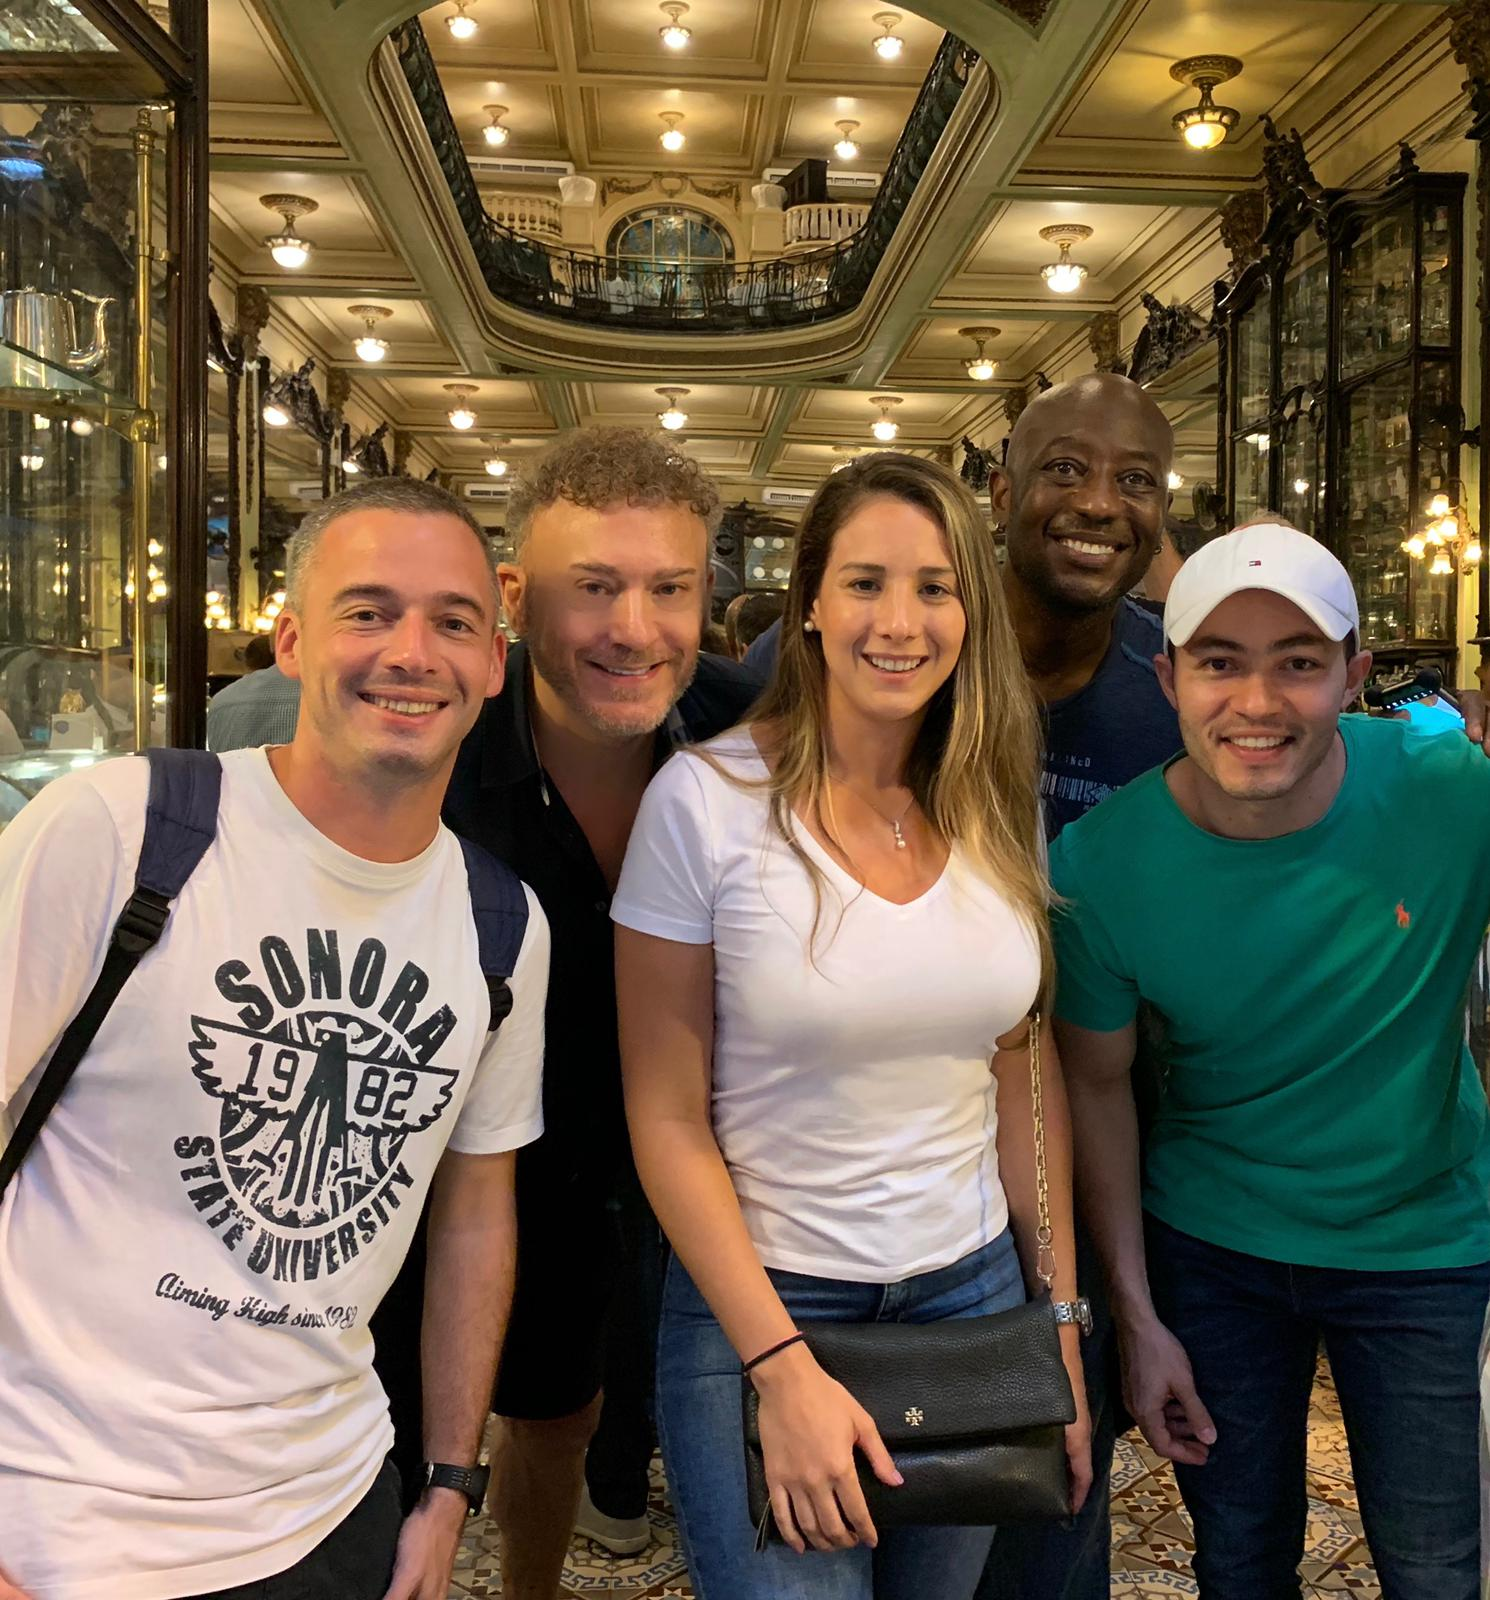 Sweet Afternoon at Confeitaria Colombo. Portuguese Students in Rio